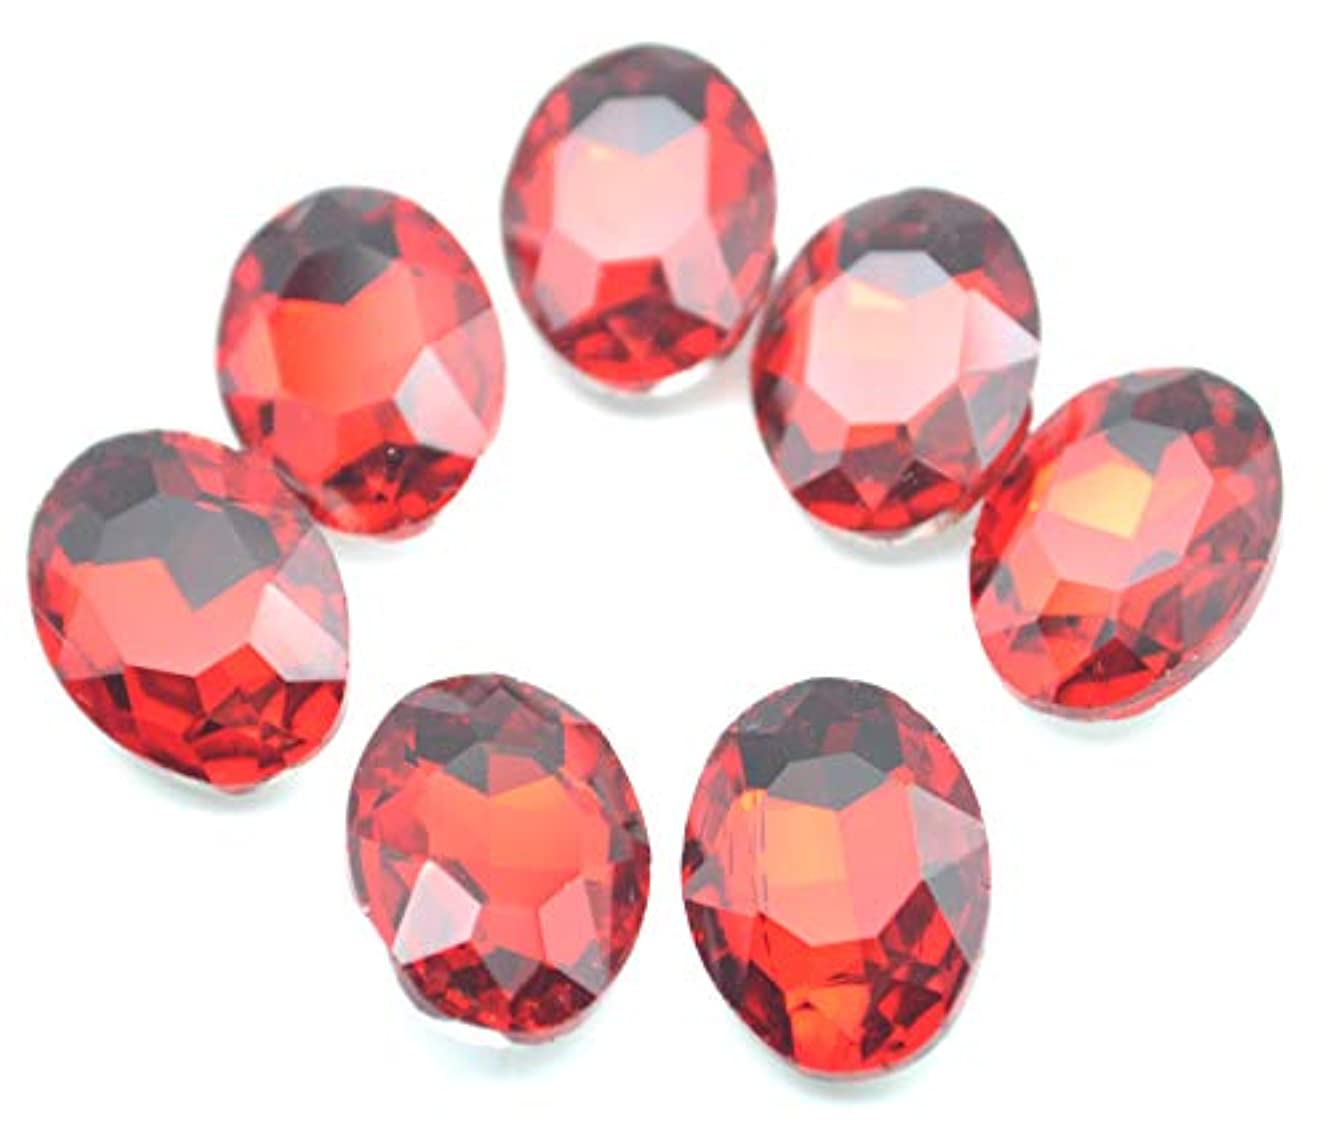 Catotrem Oval Rhinestone Glass Faceted Diamond Circle Silver Pointback Beads for Charm Jewelry 13X18mm 50pcs(Red)